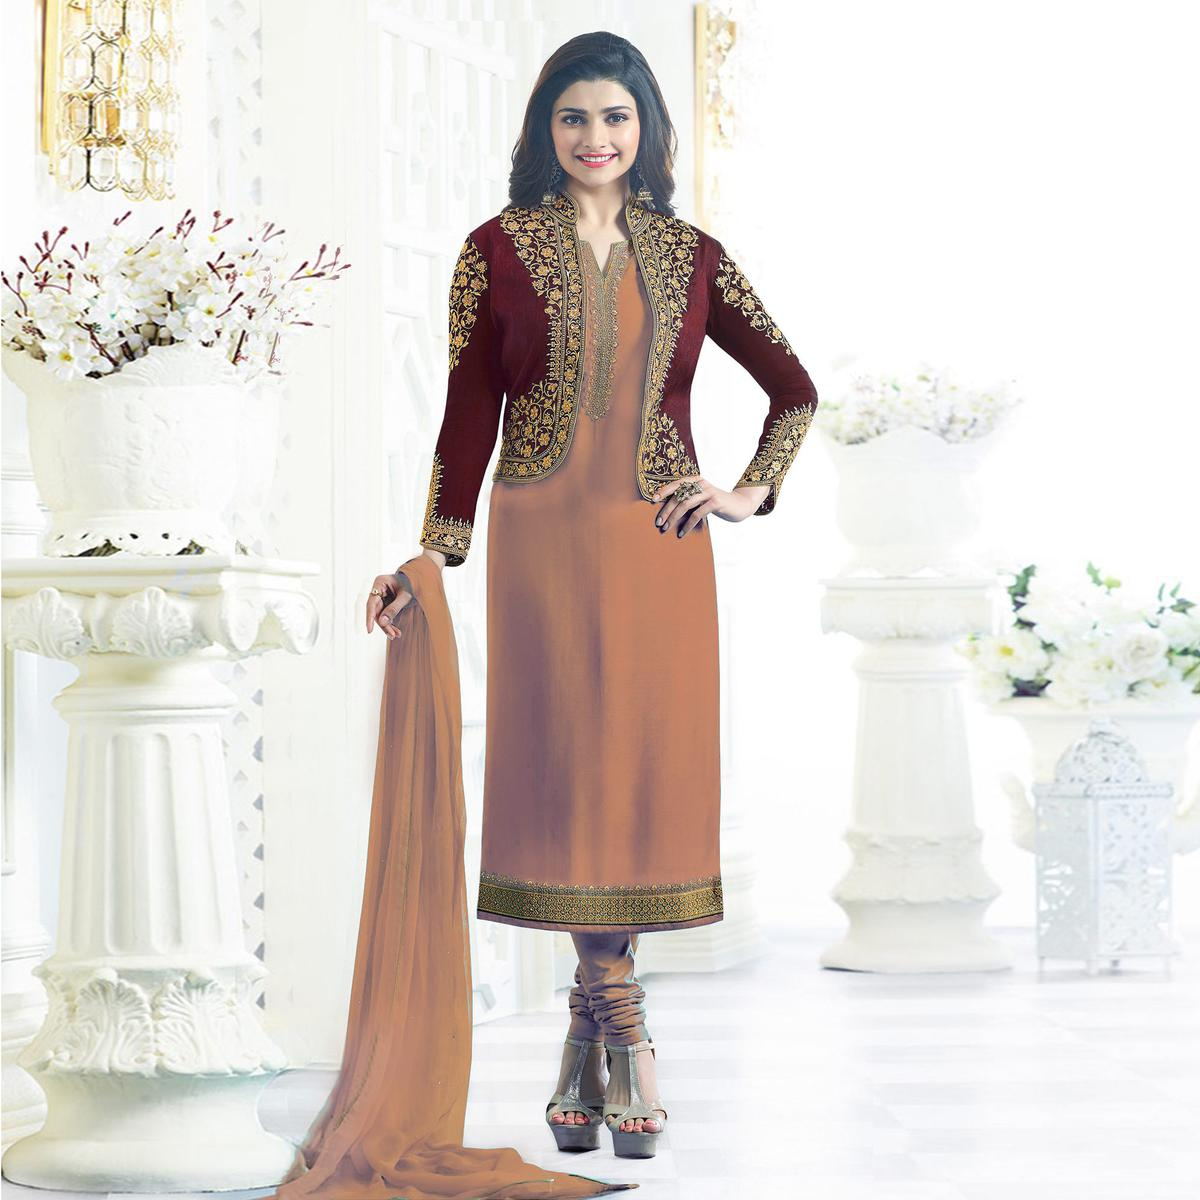 f63357ecf1e7 Buy Orange Jacket Style Designer Suit for womens online India, Best Prices,  Reviews - peachmode